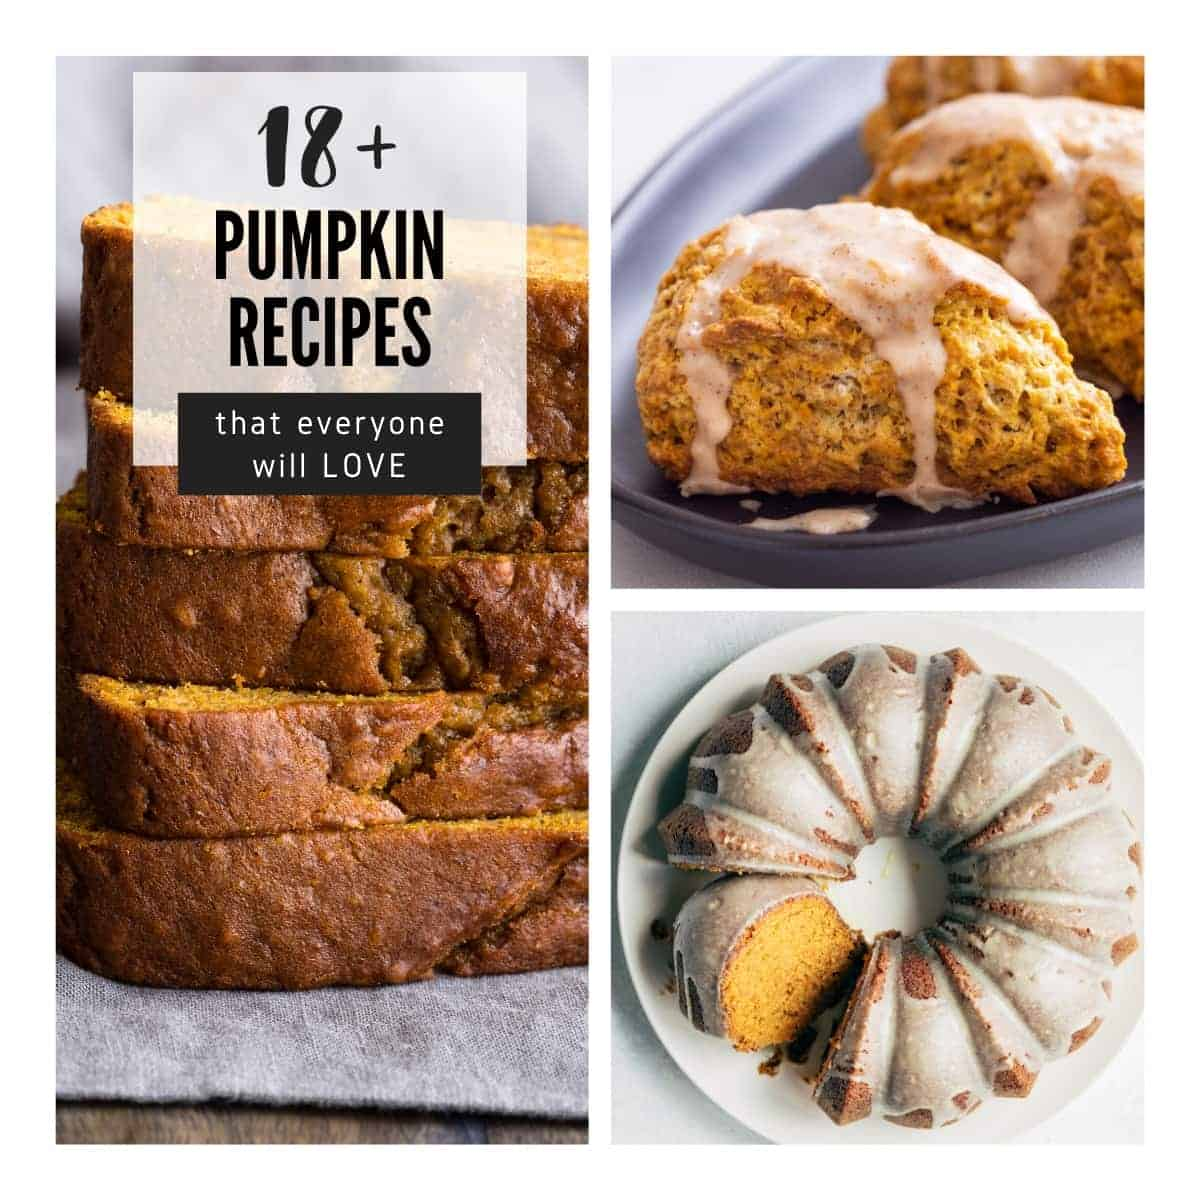 https://www.bakedbyanintrovert.com/incredible-pumpkin-recipes/